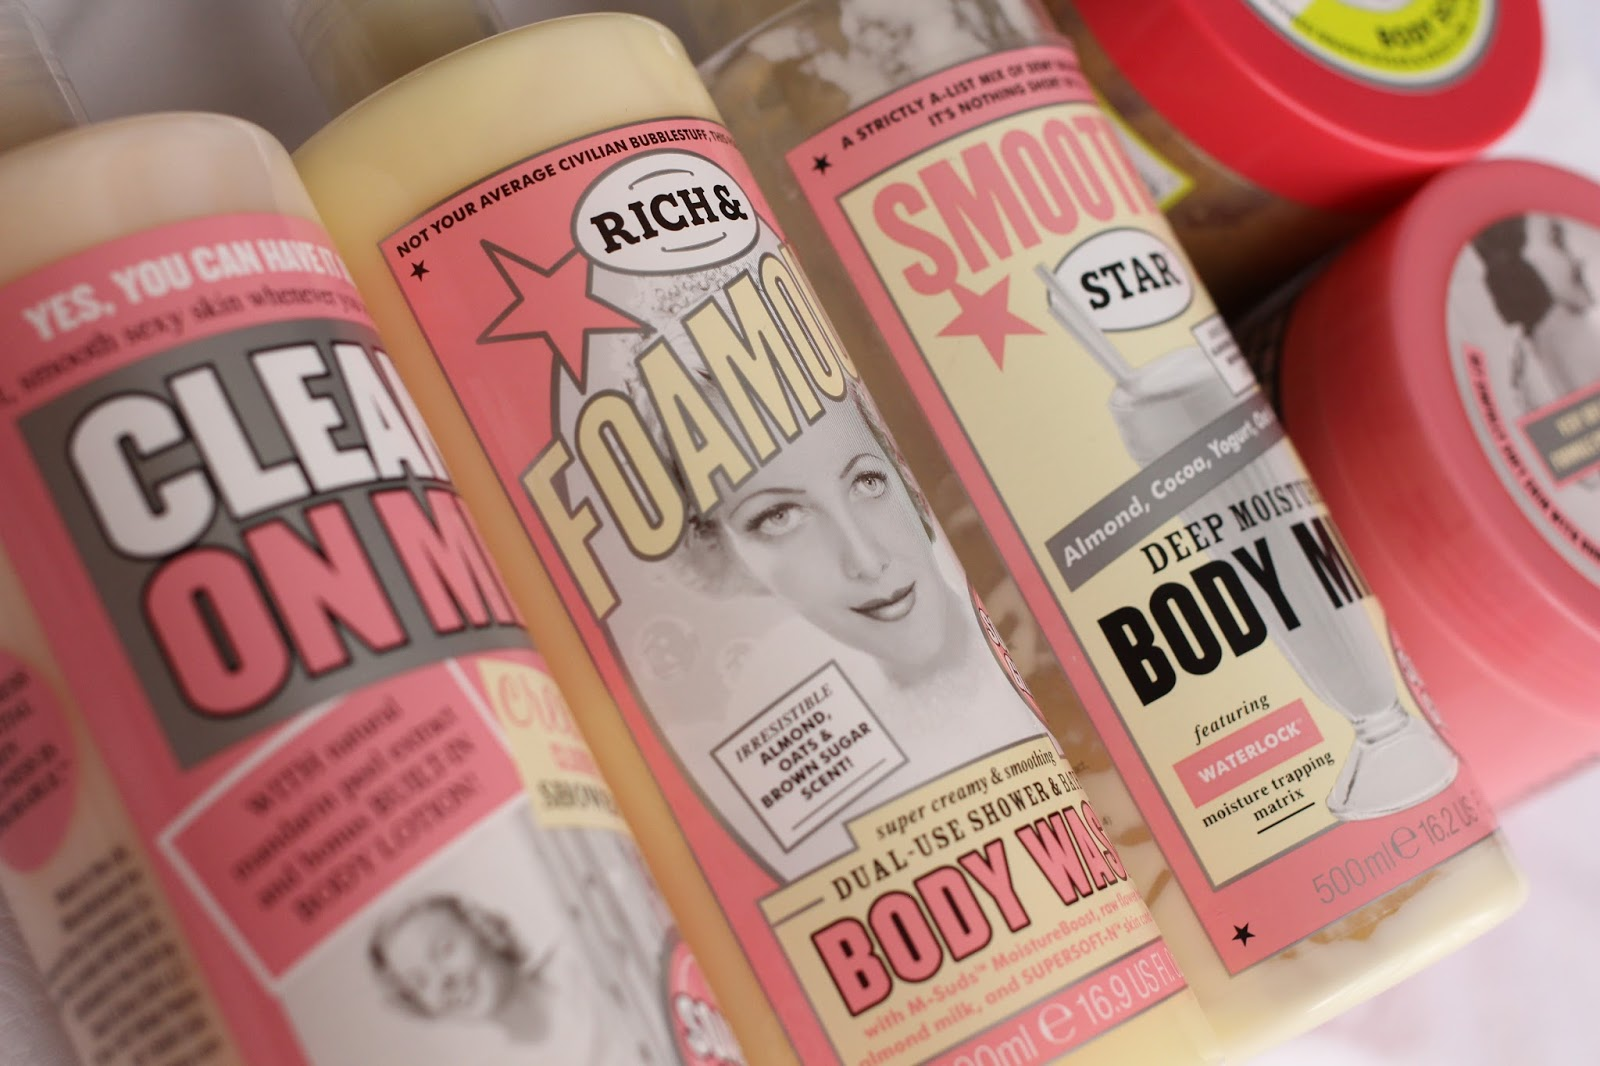 Soap and Glory products